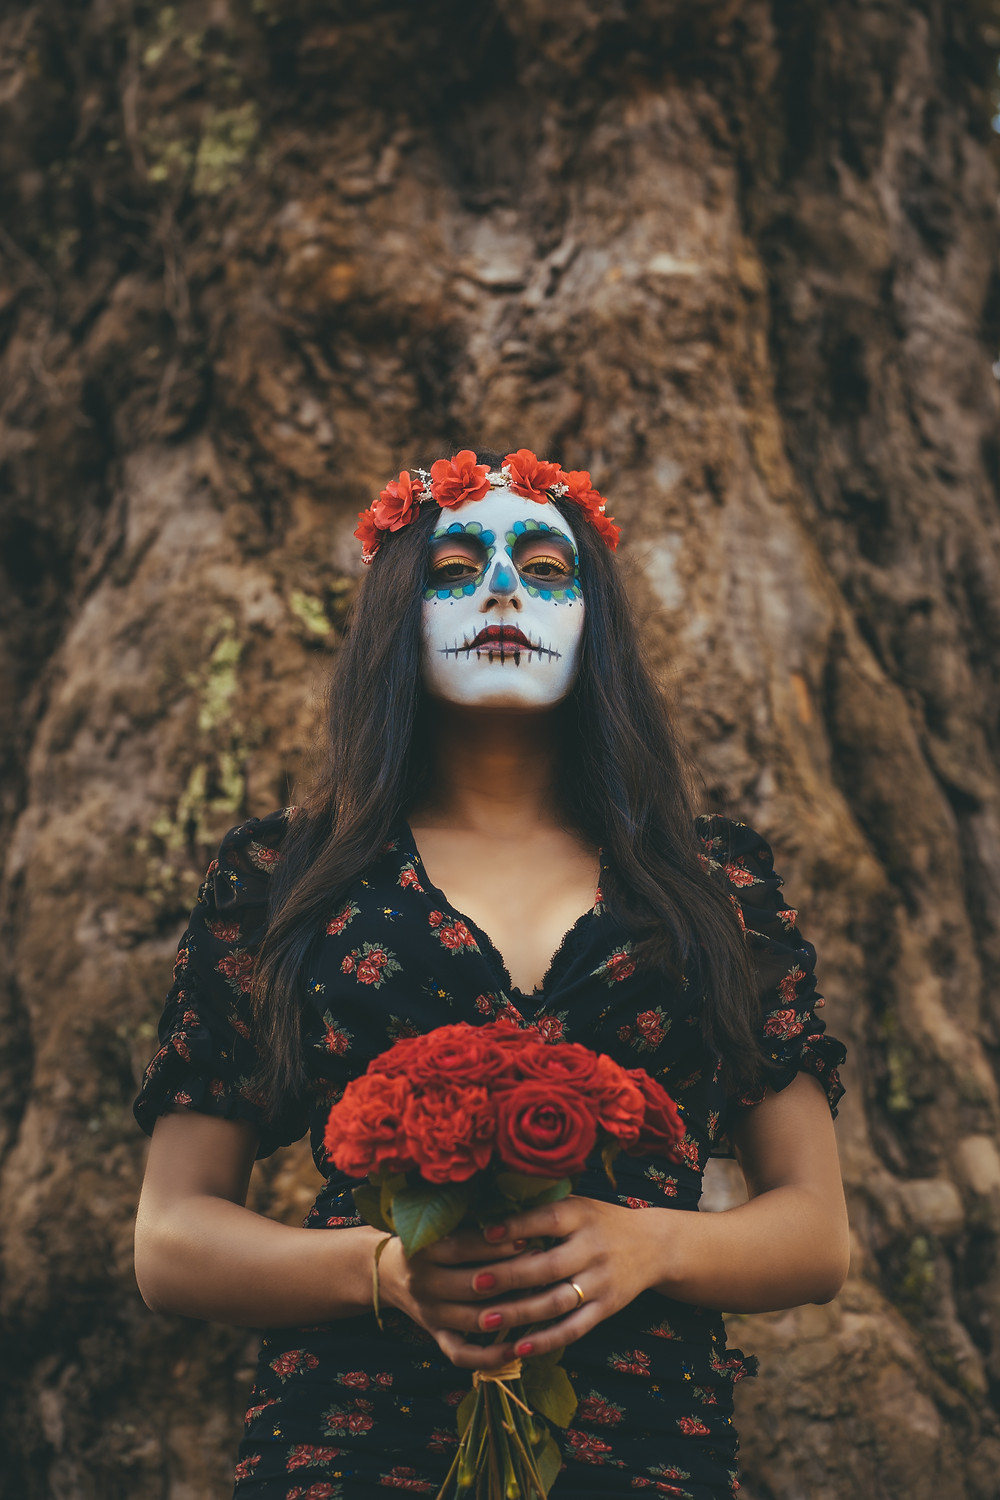 gorgeous woman dressed up a sugar skull holding flowers with a flower crown